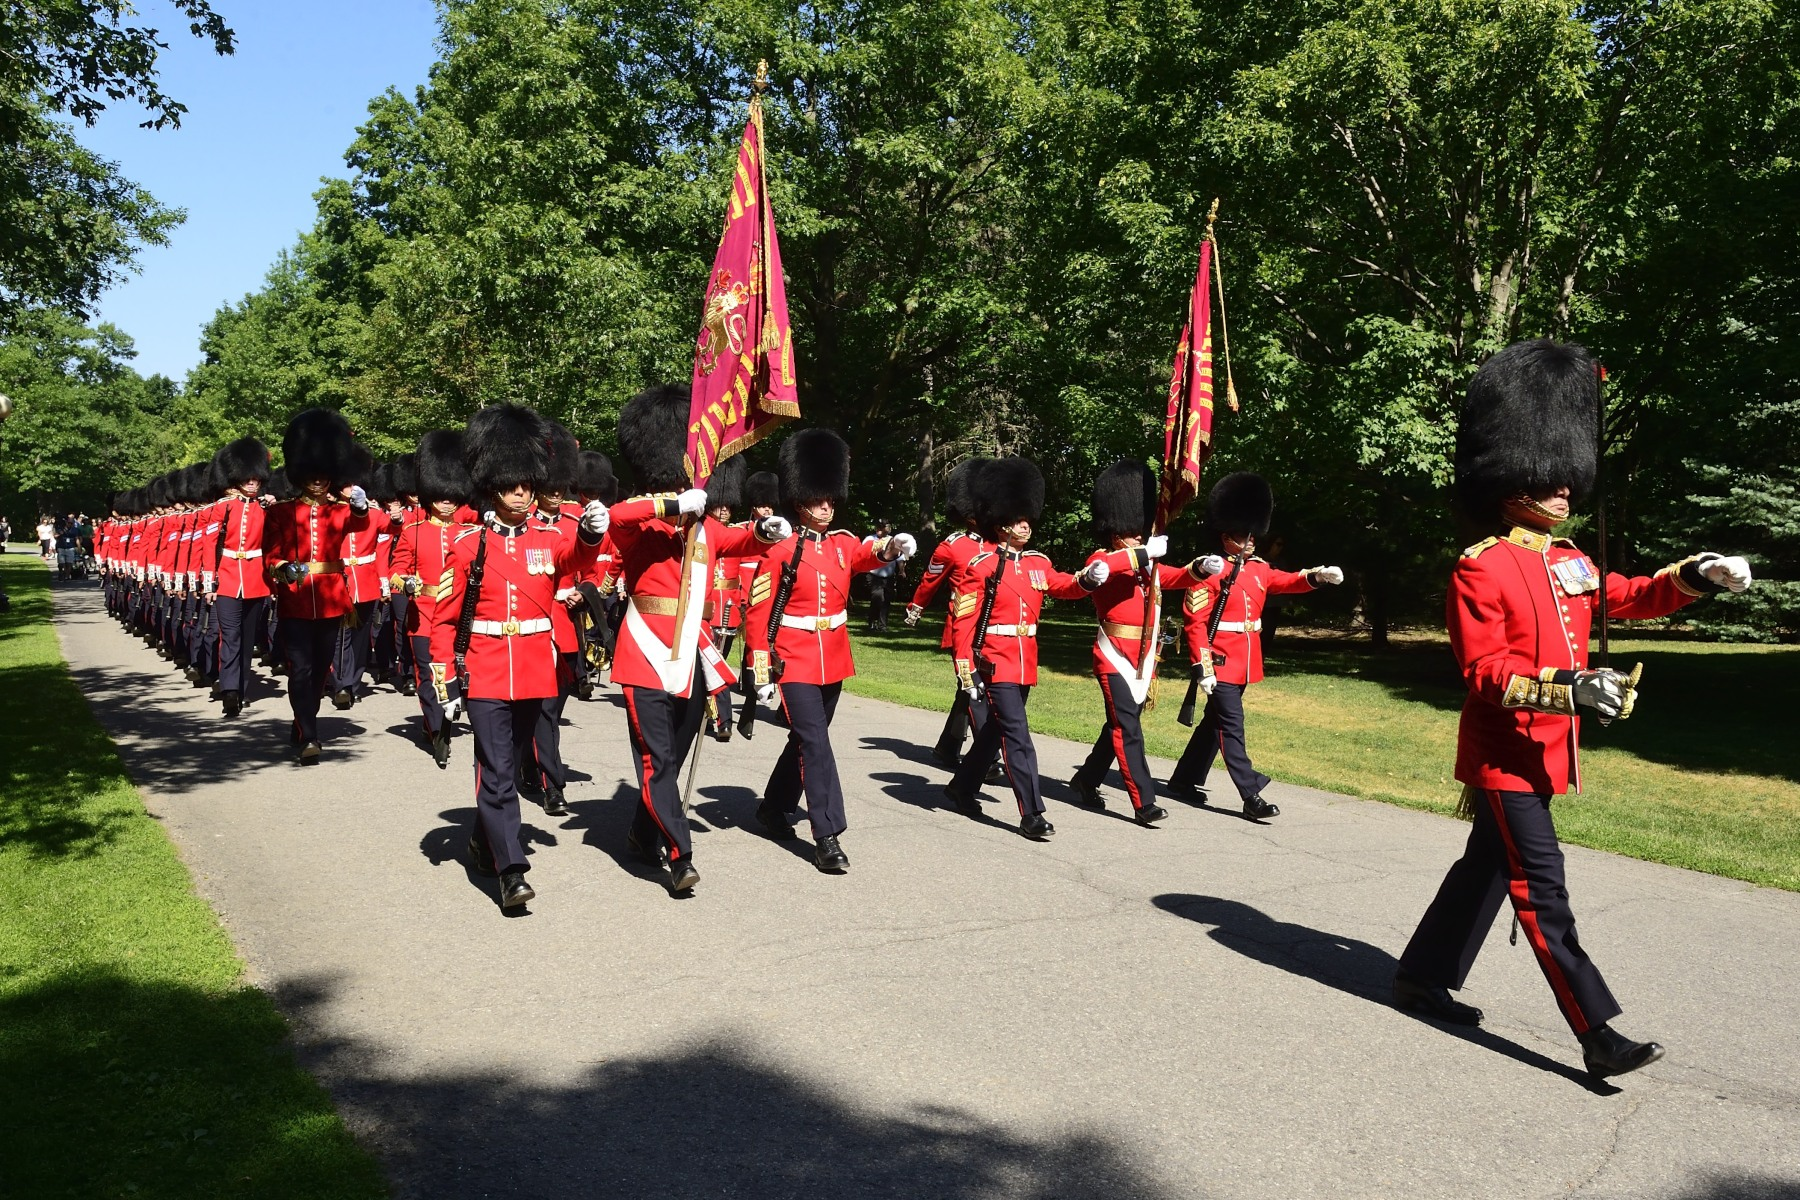 His Excellency the Right Honourable David Johnston, Governor General and Commander-in-Chief of Canada, invited the public to join him for the annual Inspection of the Ceremonial Guard on the grounds of Rideau Hall on June 25.